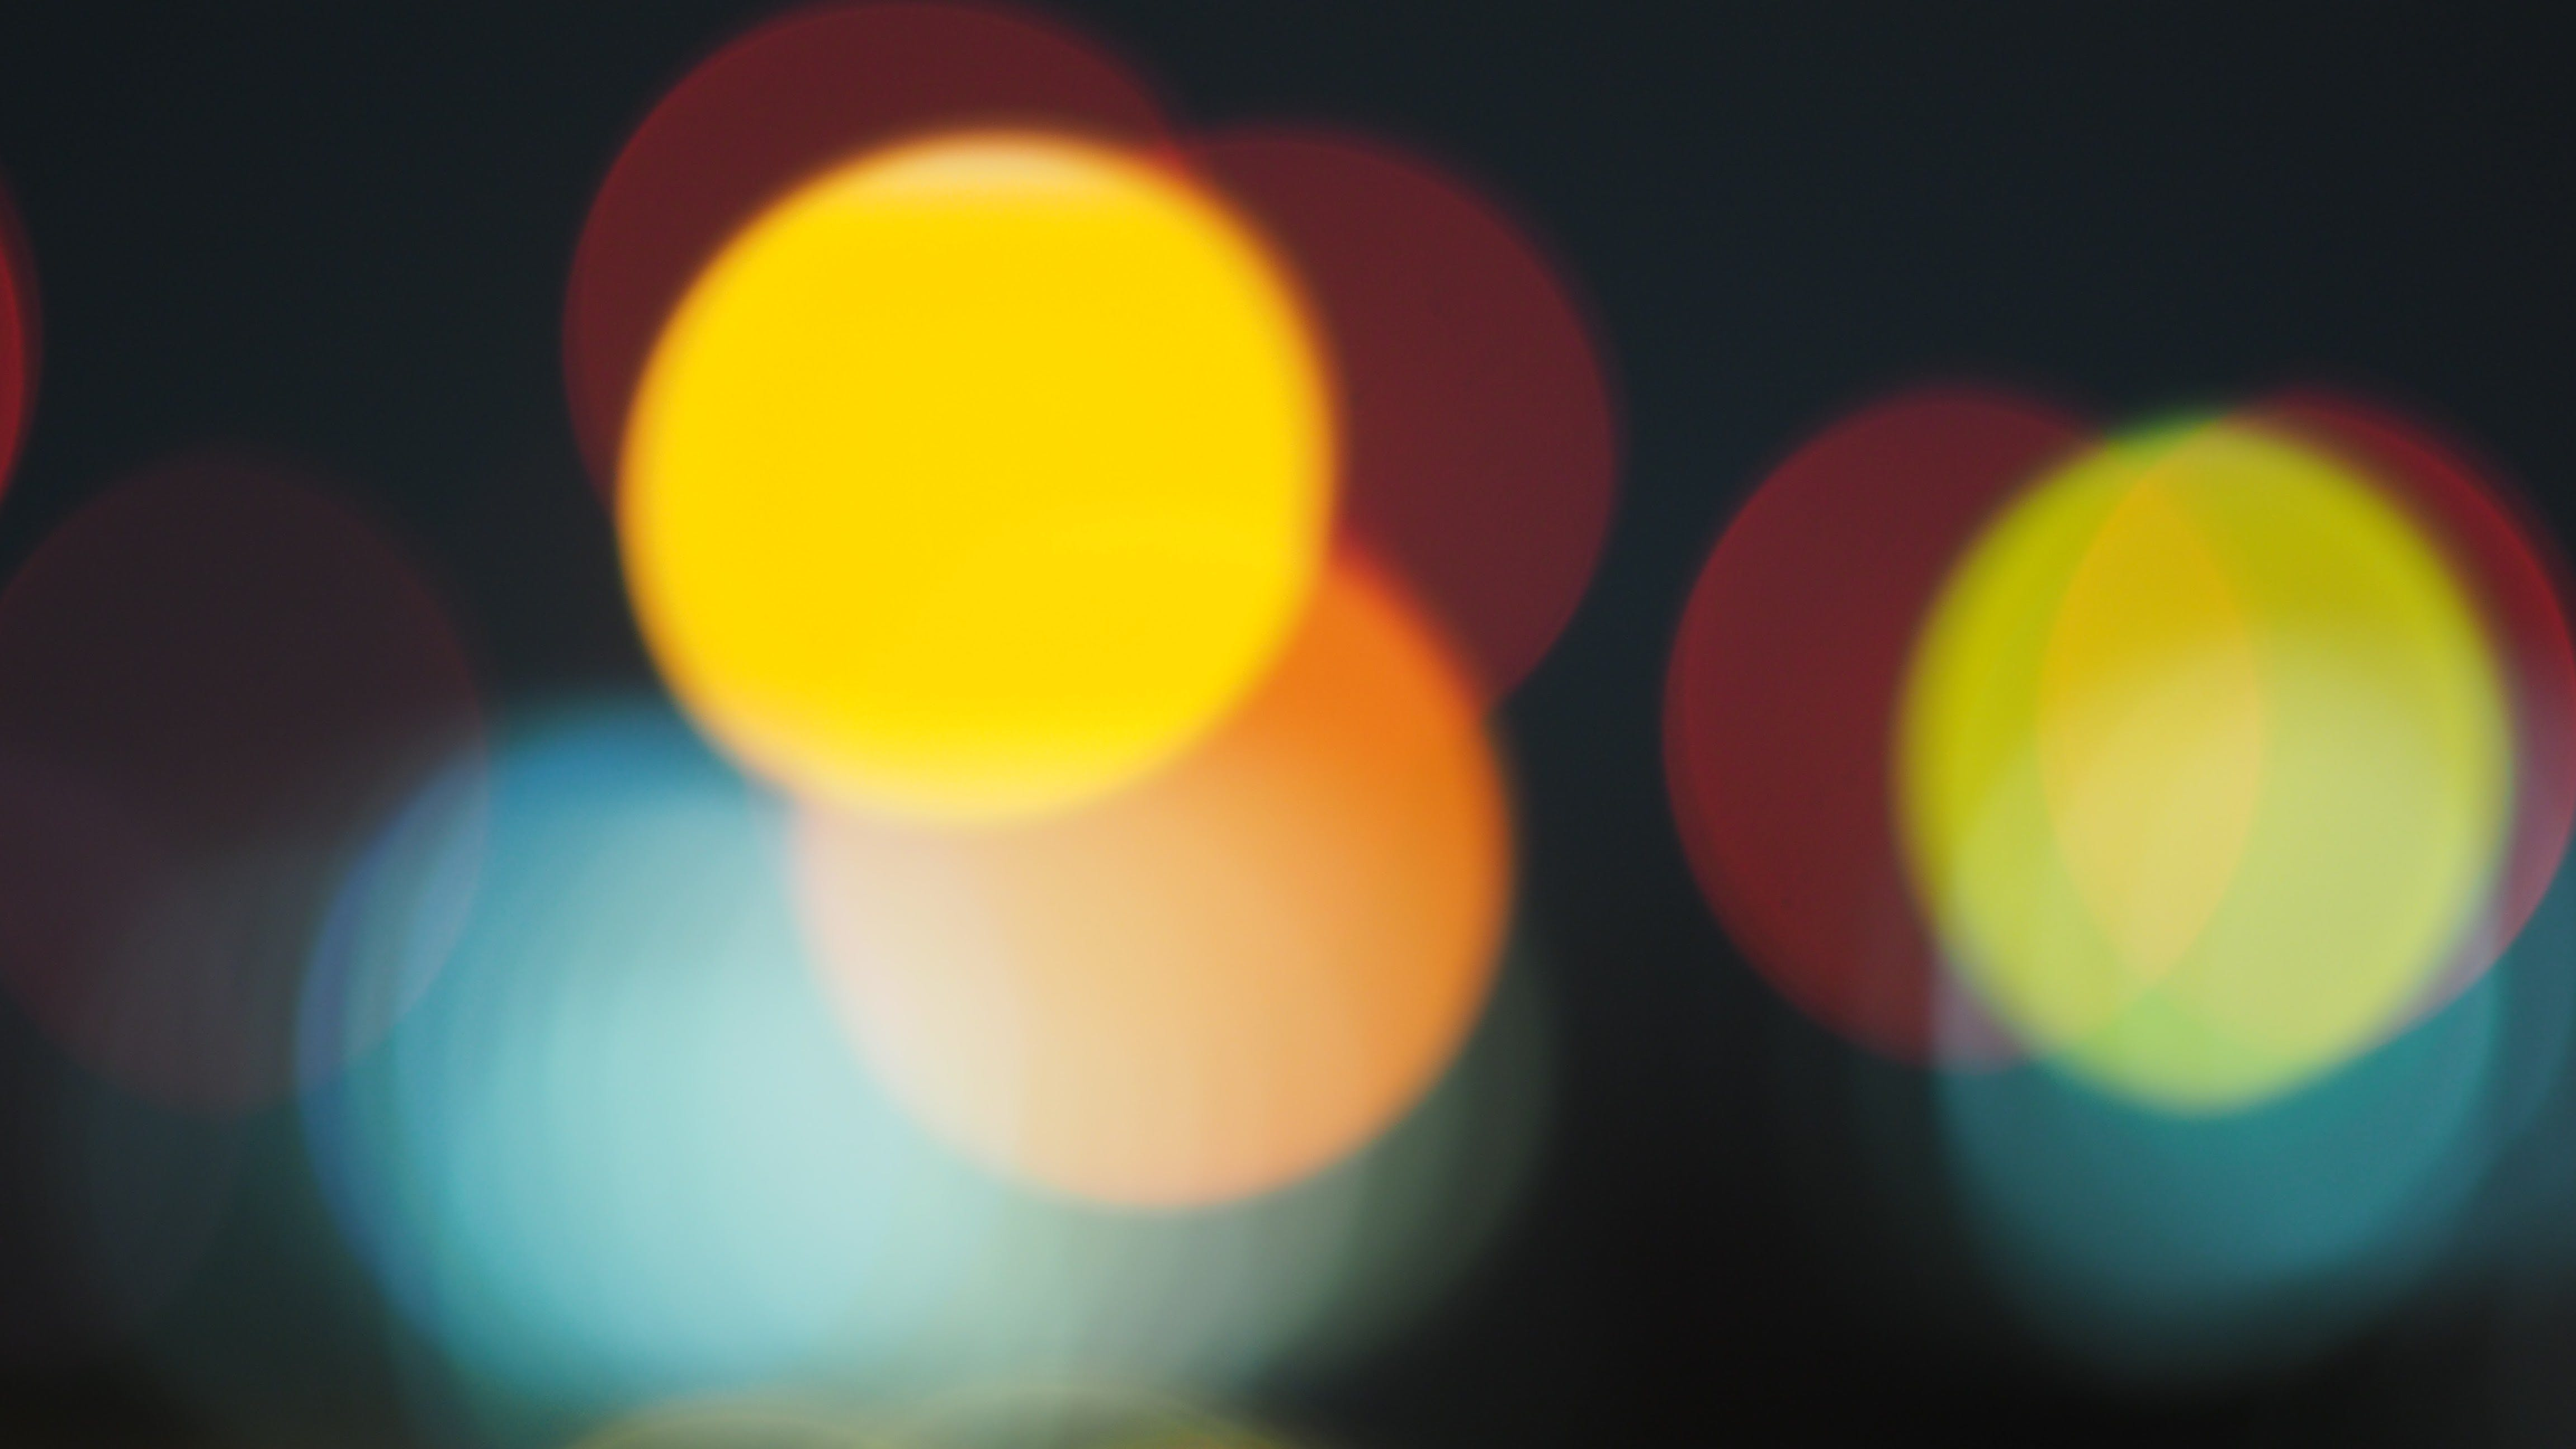 Free stock photo of flare, lens flare